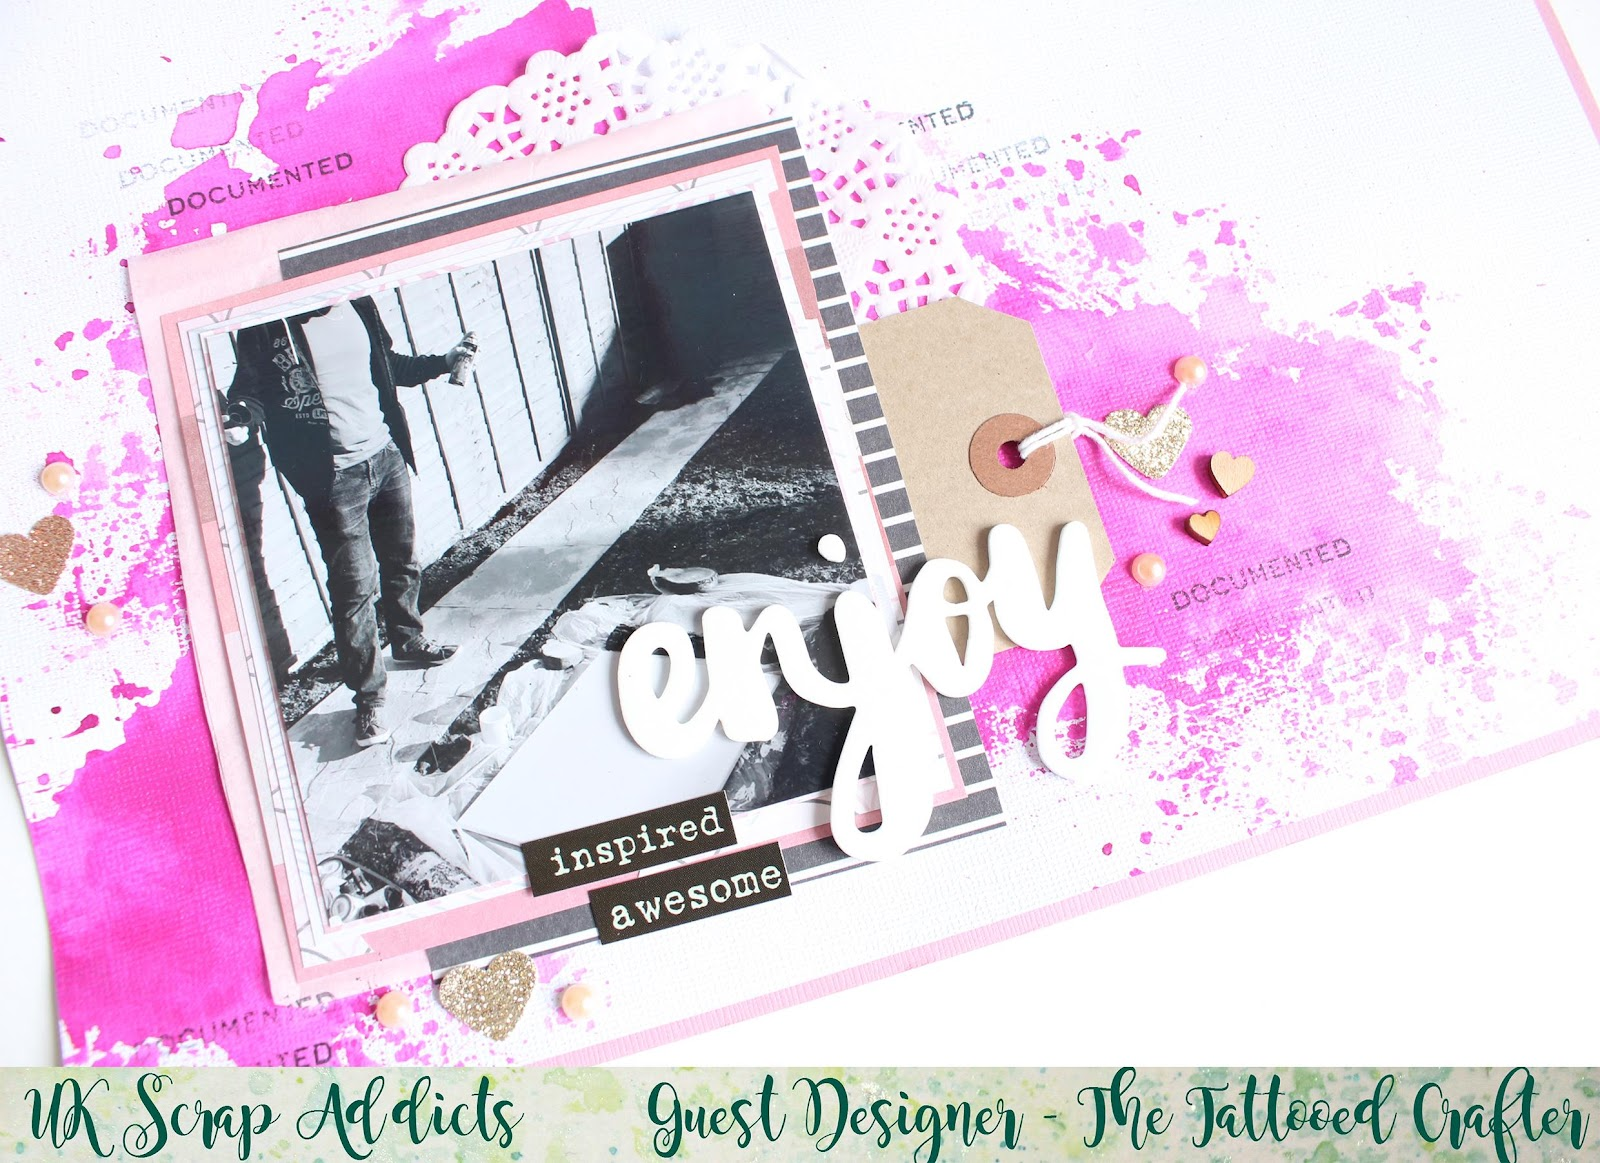 Samsung 4TB:Tattooed Crafter:images:uk scrap addicts:Julia Bailey 2.jpg